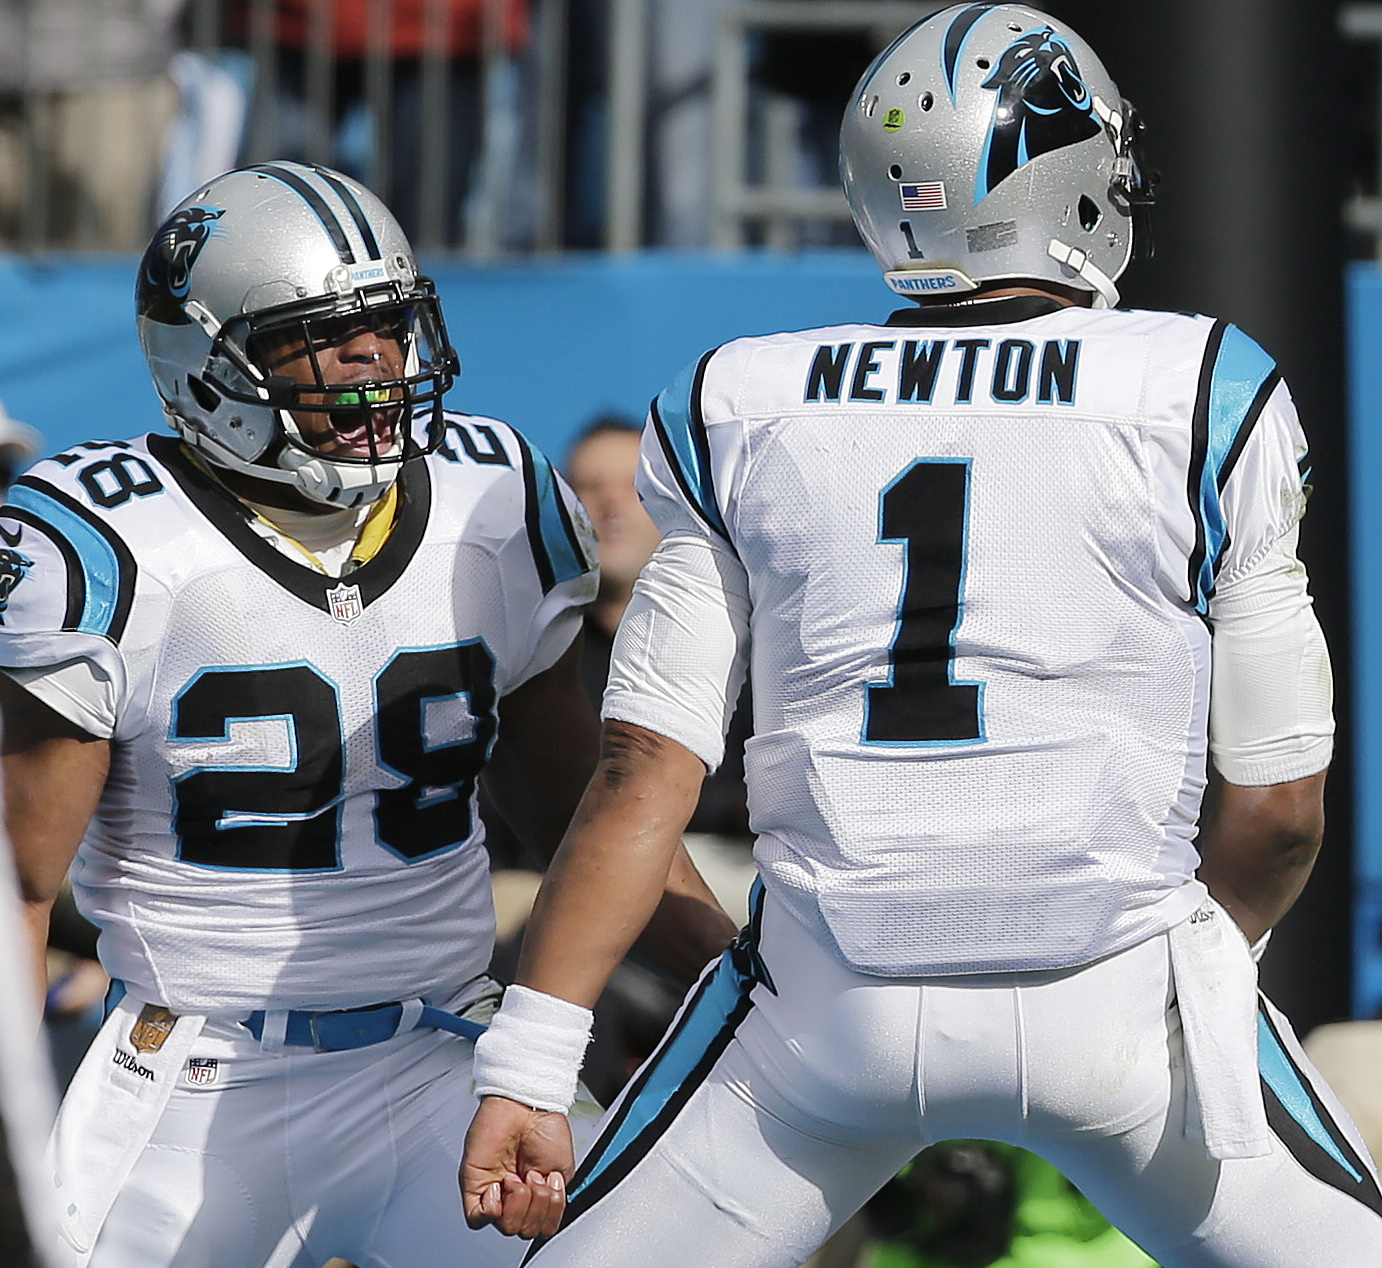 Carolina Panthers running back Jonathan Stewart (28) celebrates his touchdown with Carolina Panthers quarterback Cam Newton (1) against the Seattle Seahawks during the first half of an NFL divisional playoff football game, Sunday, Jan. 17, 2016, in Charlo